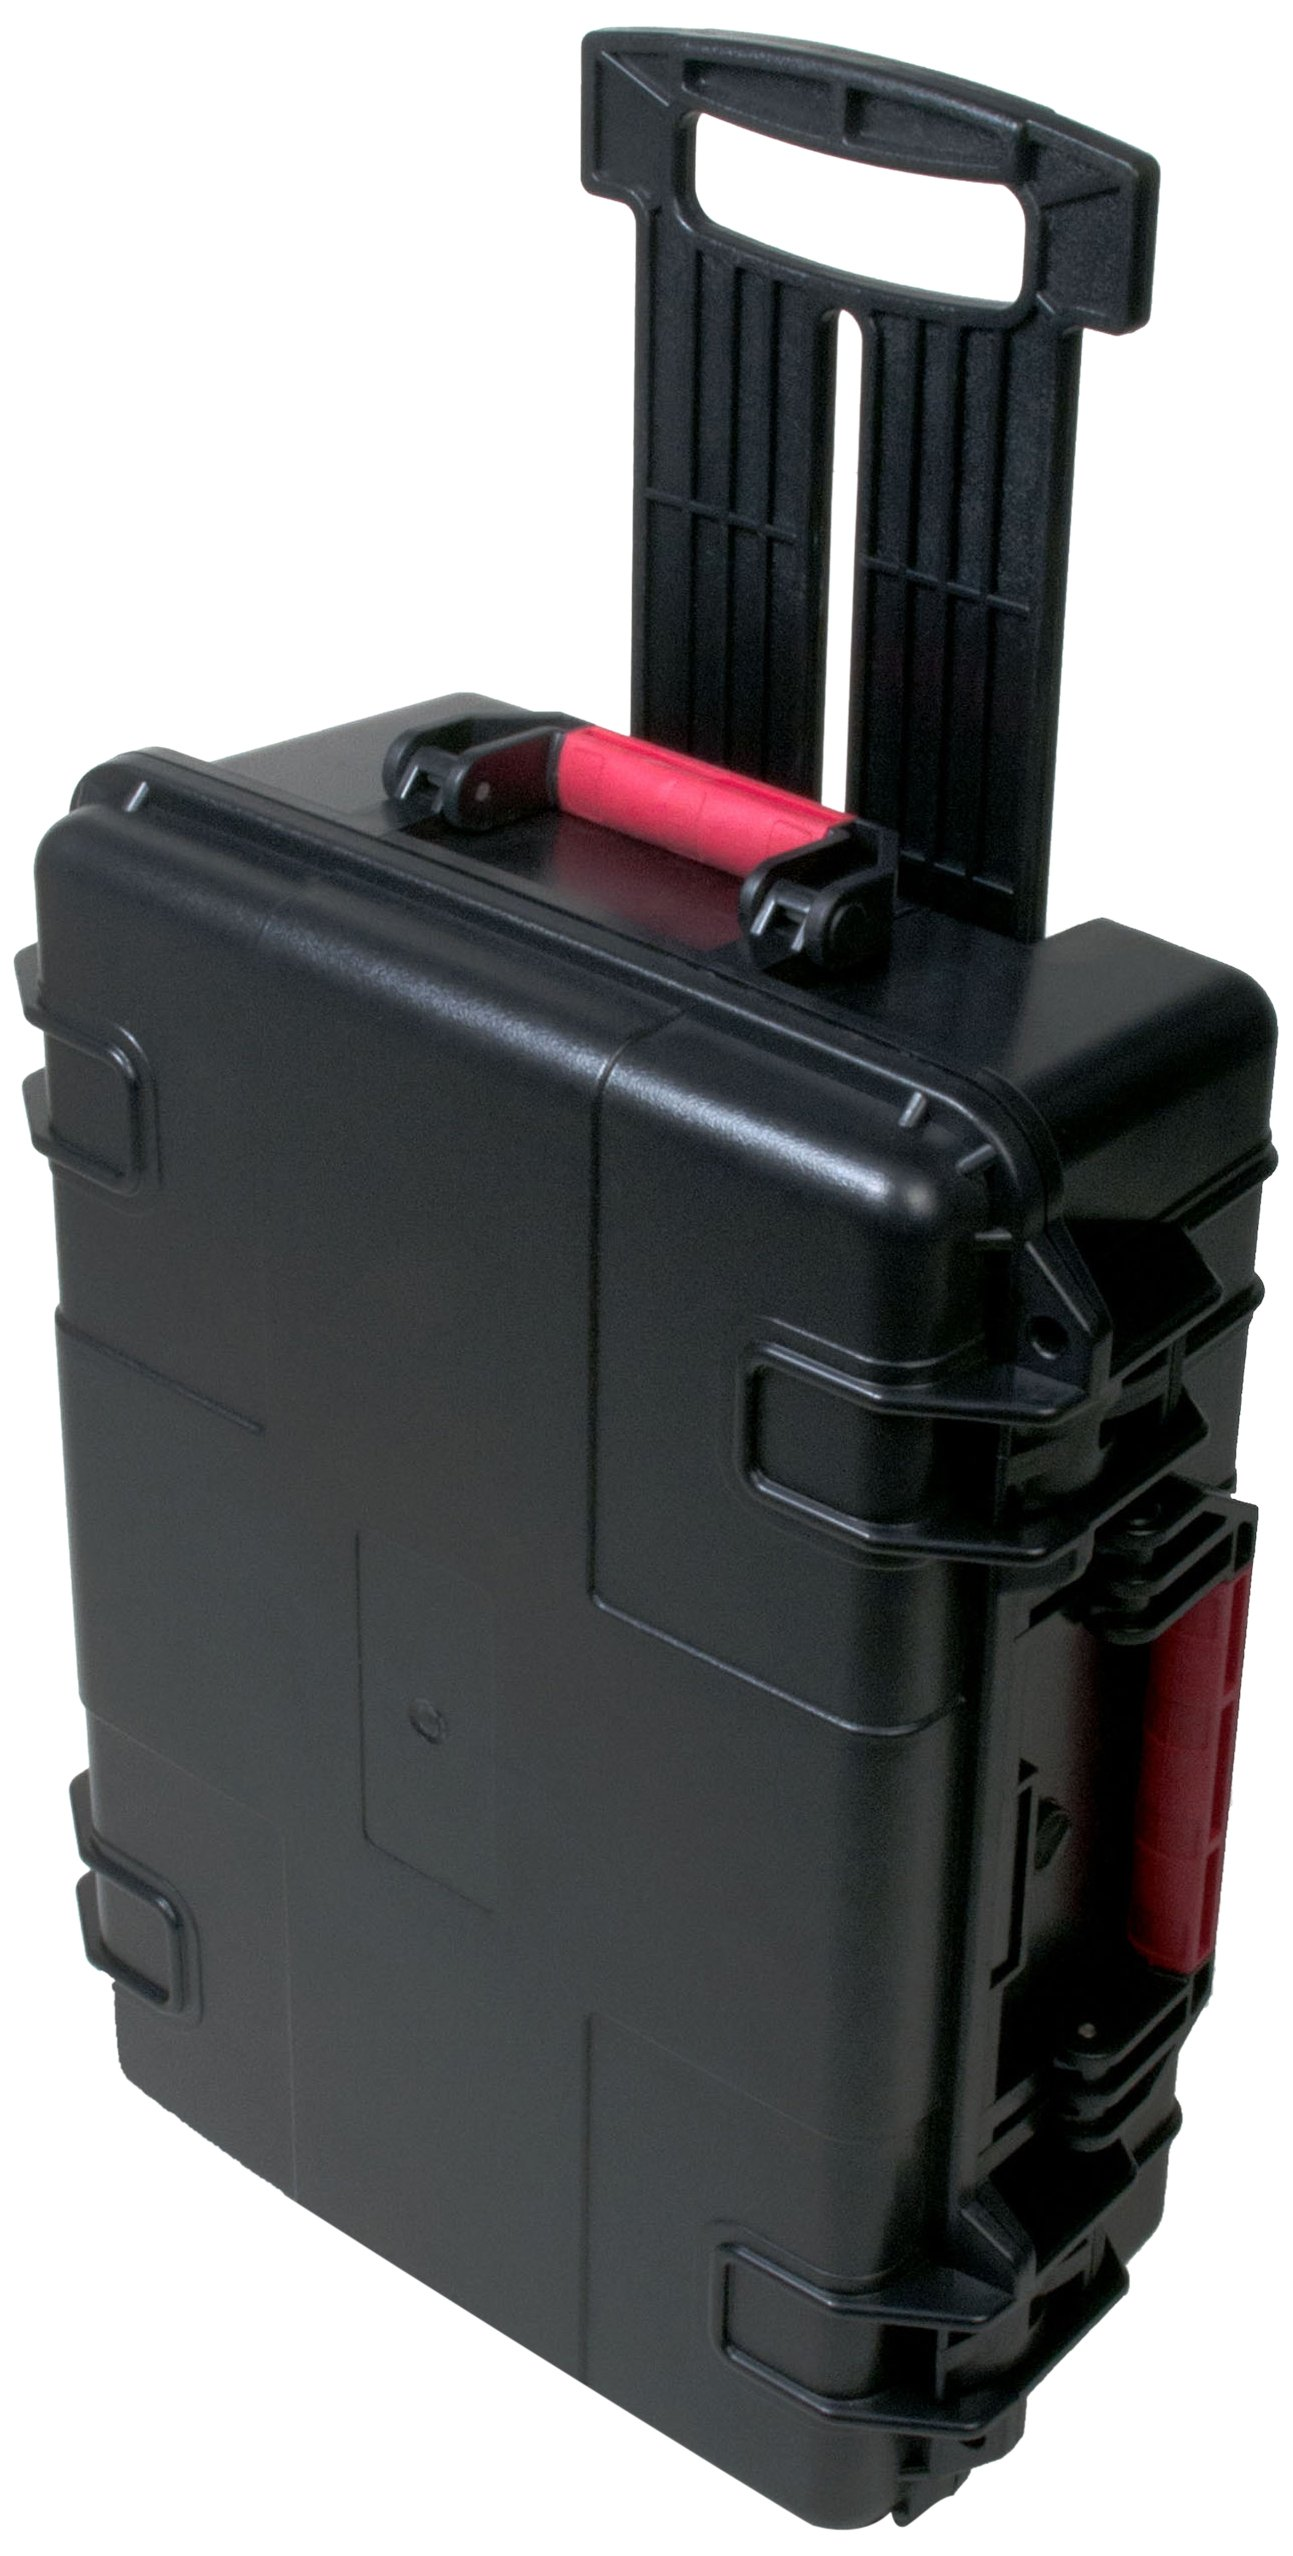 CTA Digital Heavy Duty Multi-Storage Hard Case for Xbox 360 by CTA Digital